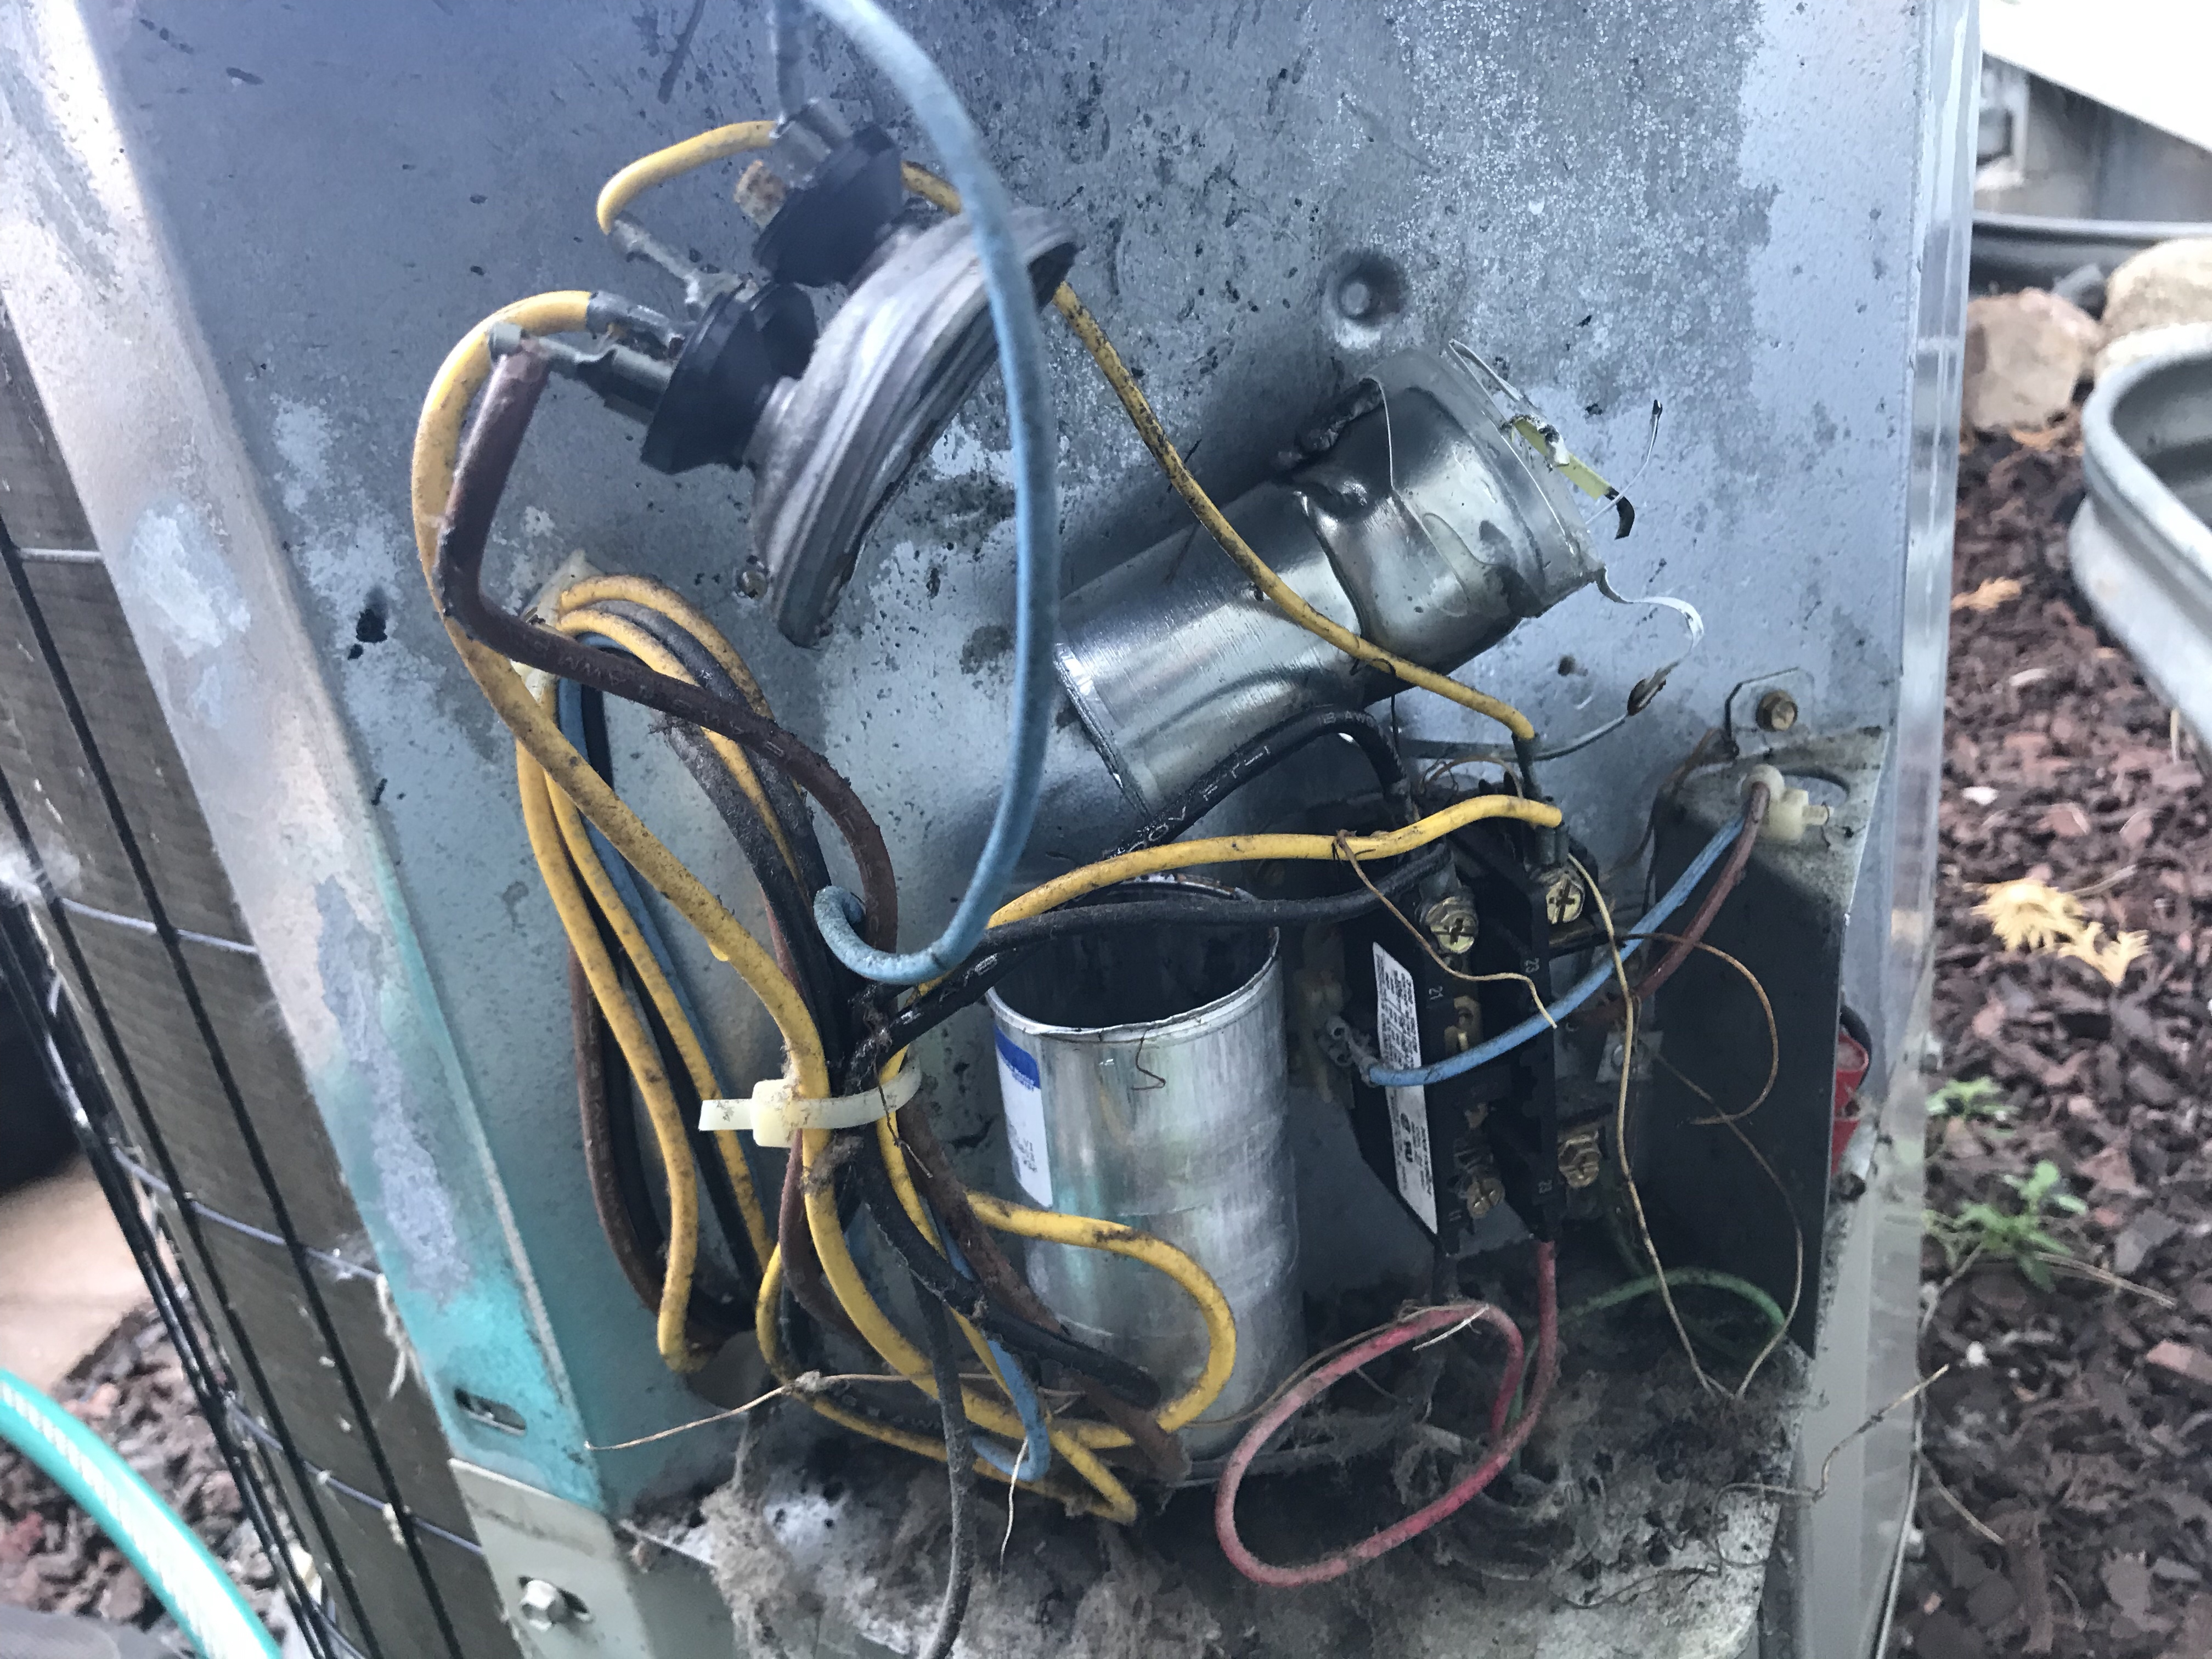 Capacitor that exploded